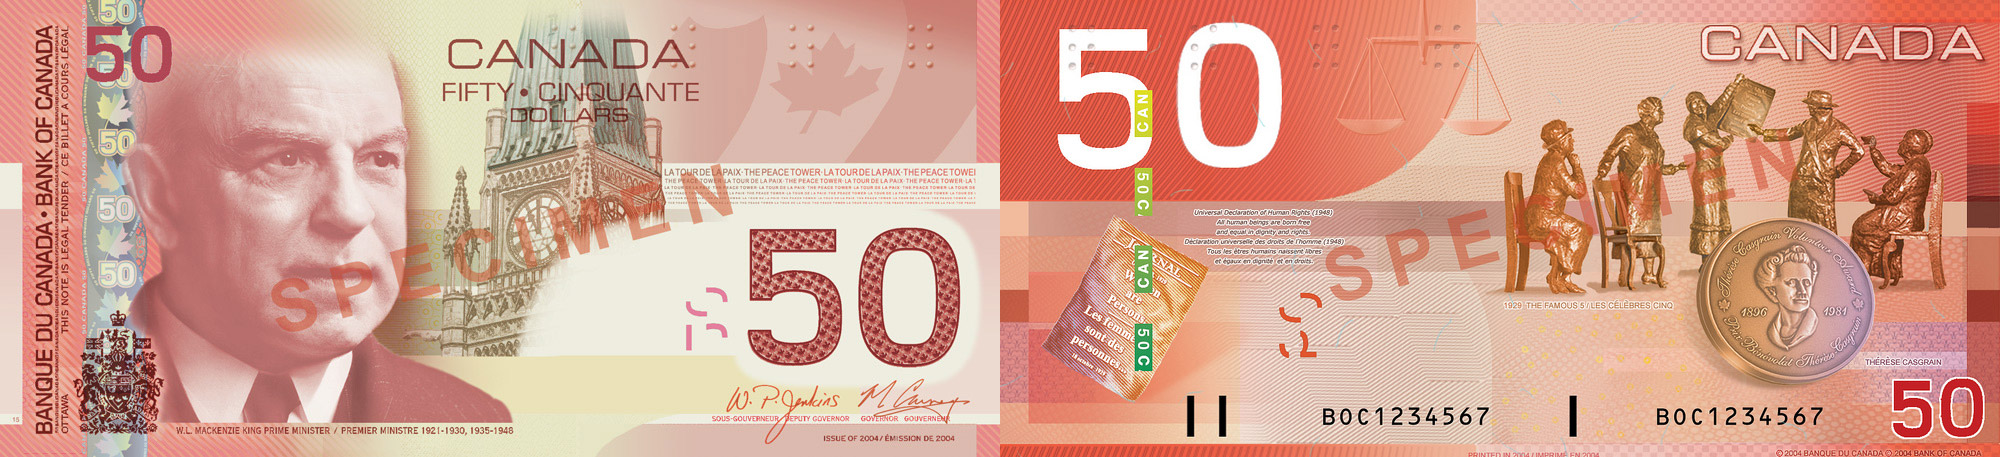 50 dollars 2004 to 2006 - Canada Banknote